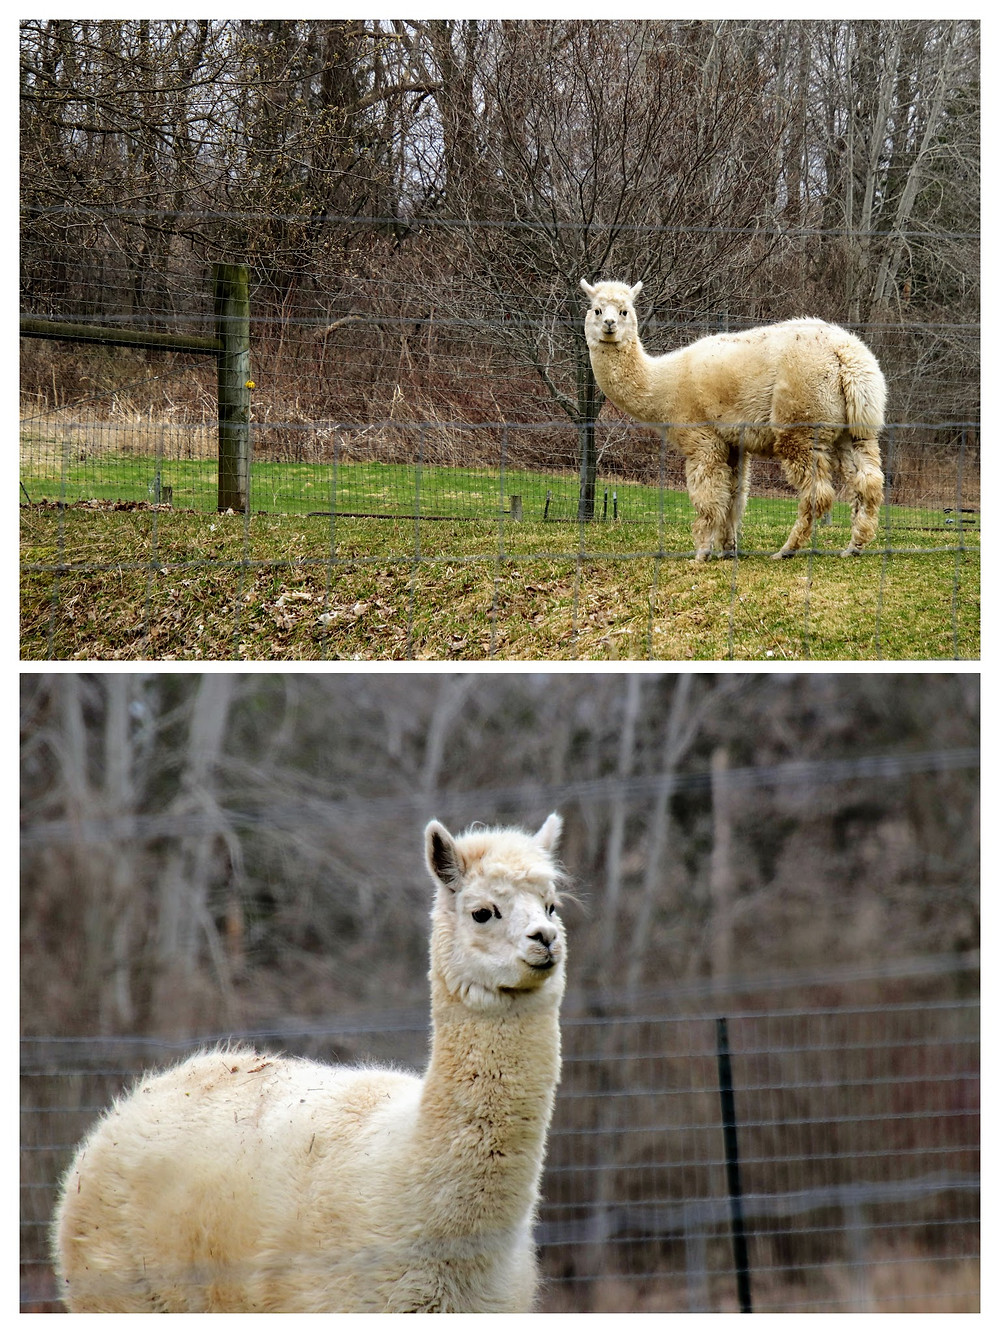 Alpaca Checking Me Out